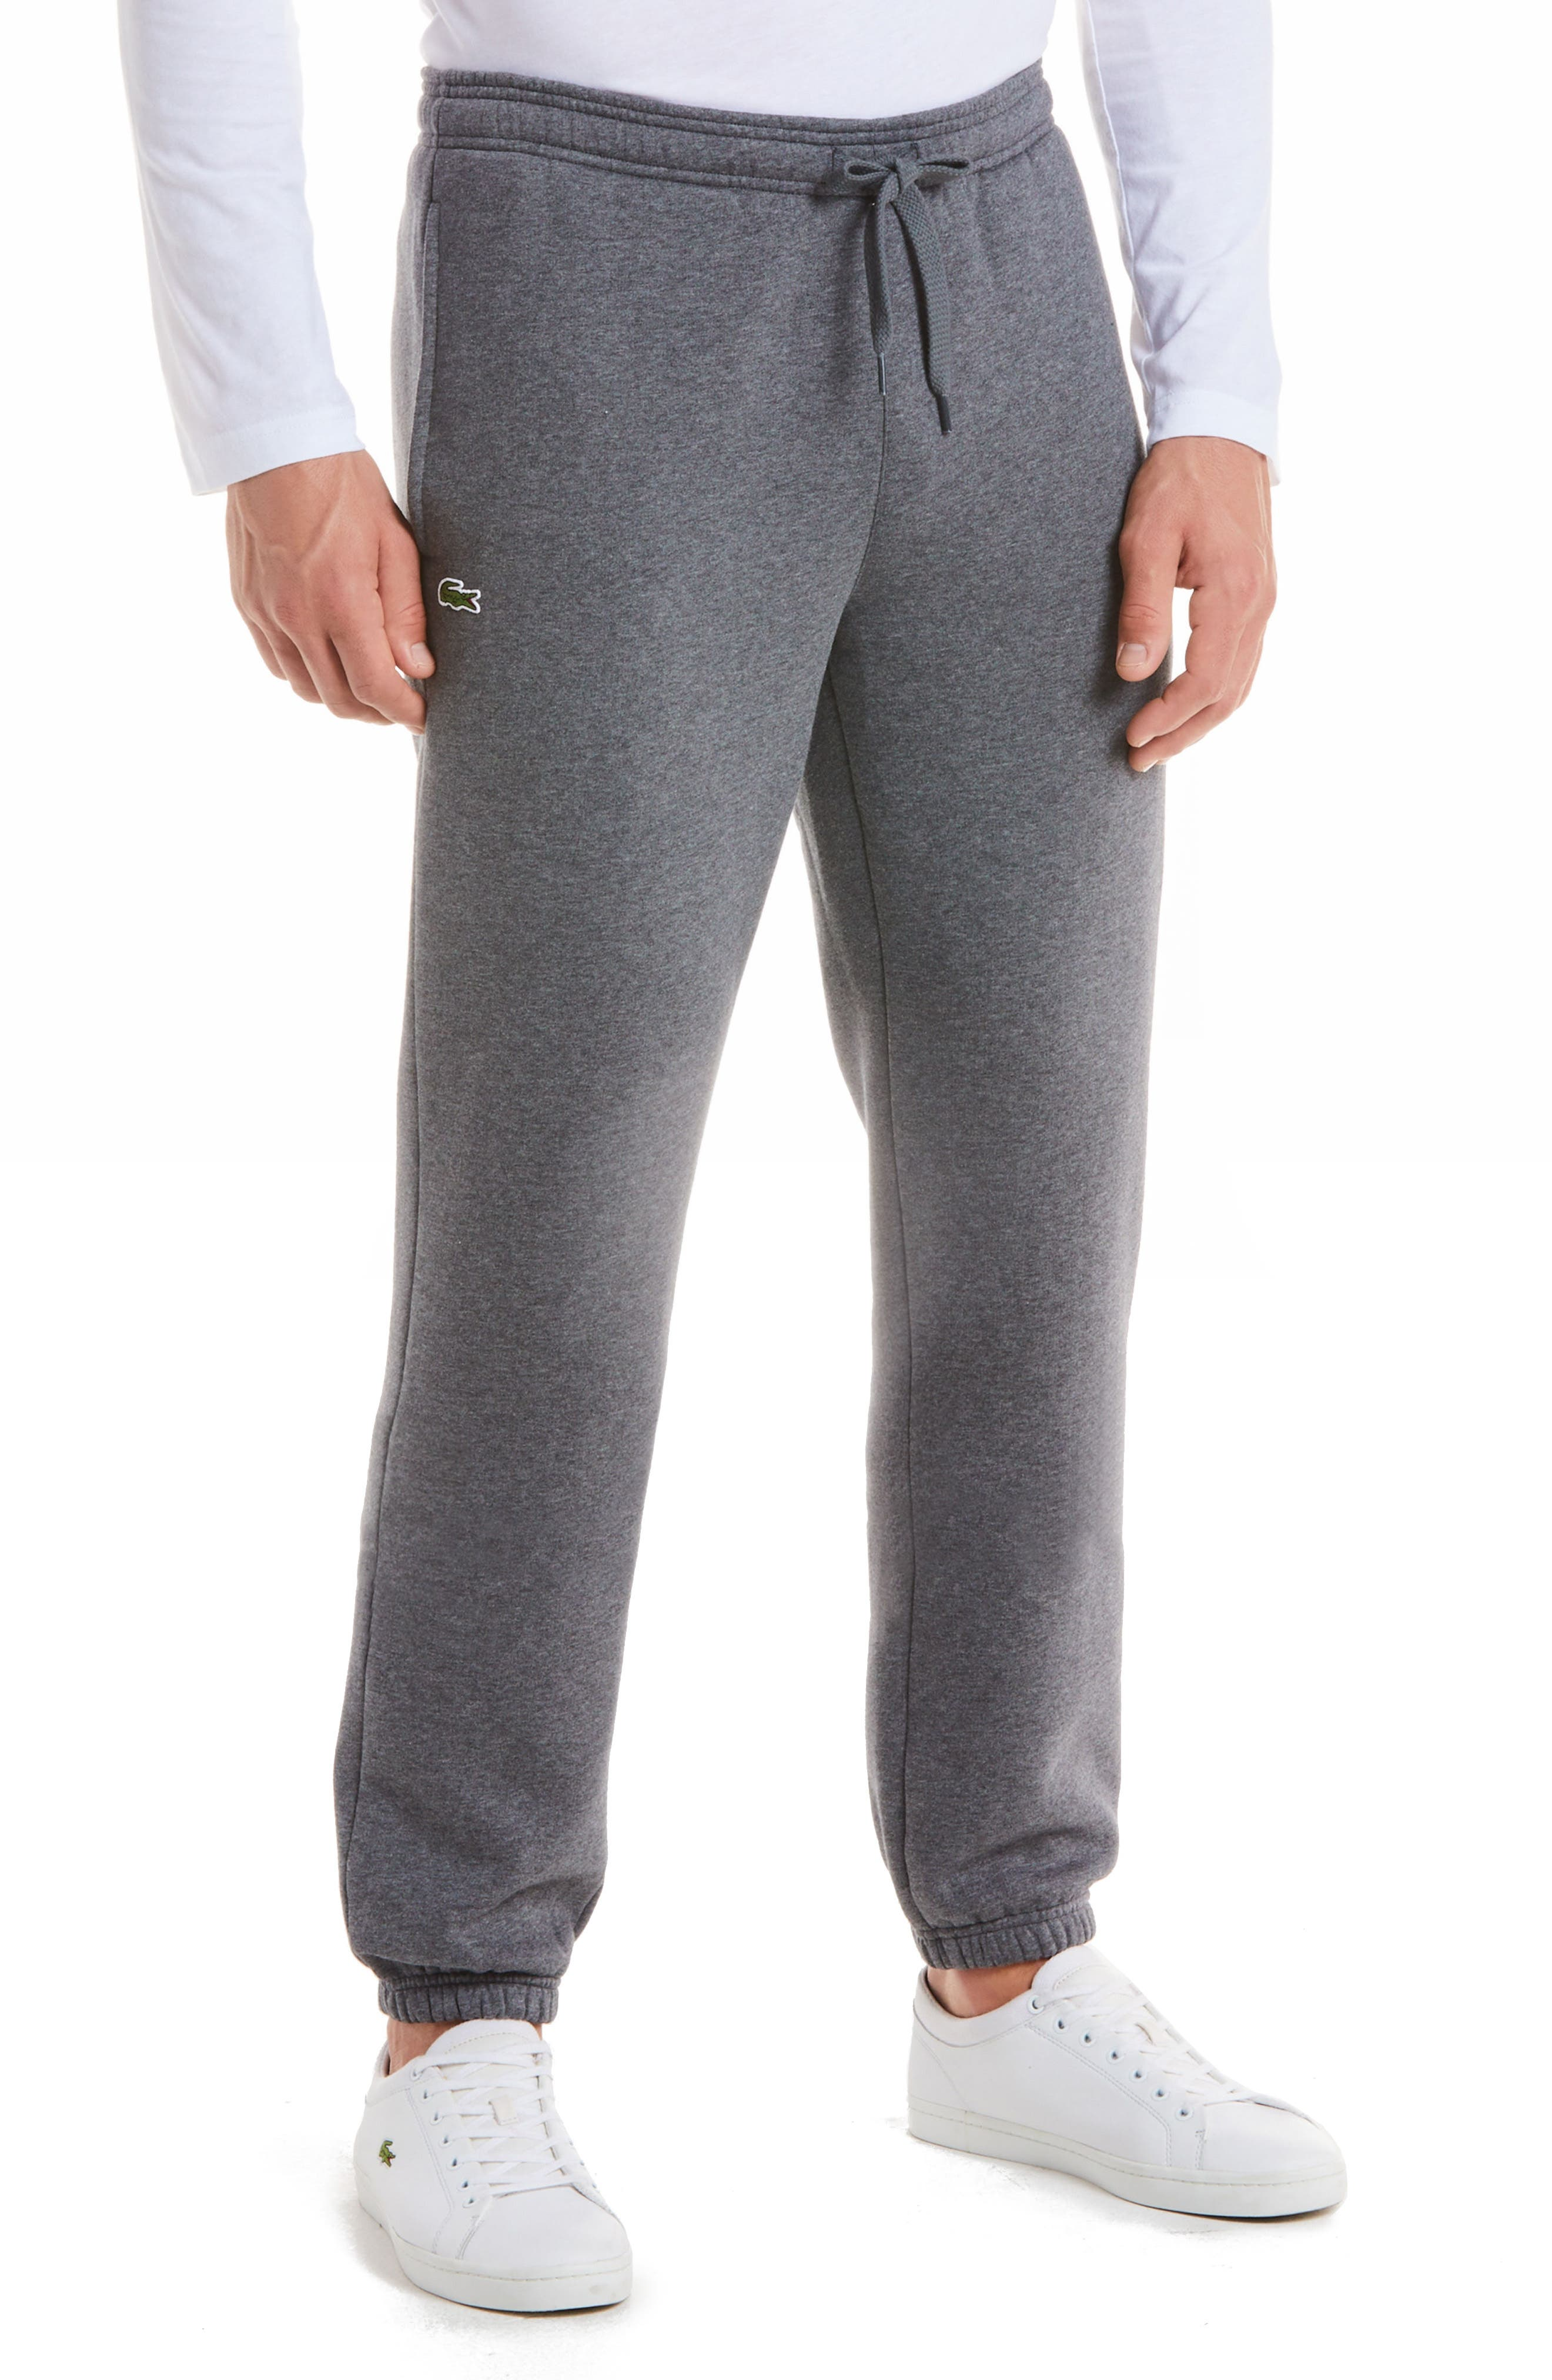 'Sport' Tapered Sweatpants,                             Main thumbnail 1, color,                             PITCH